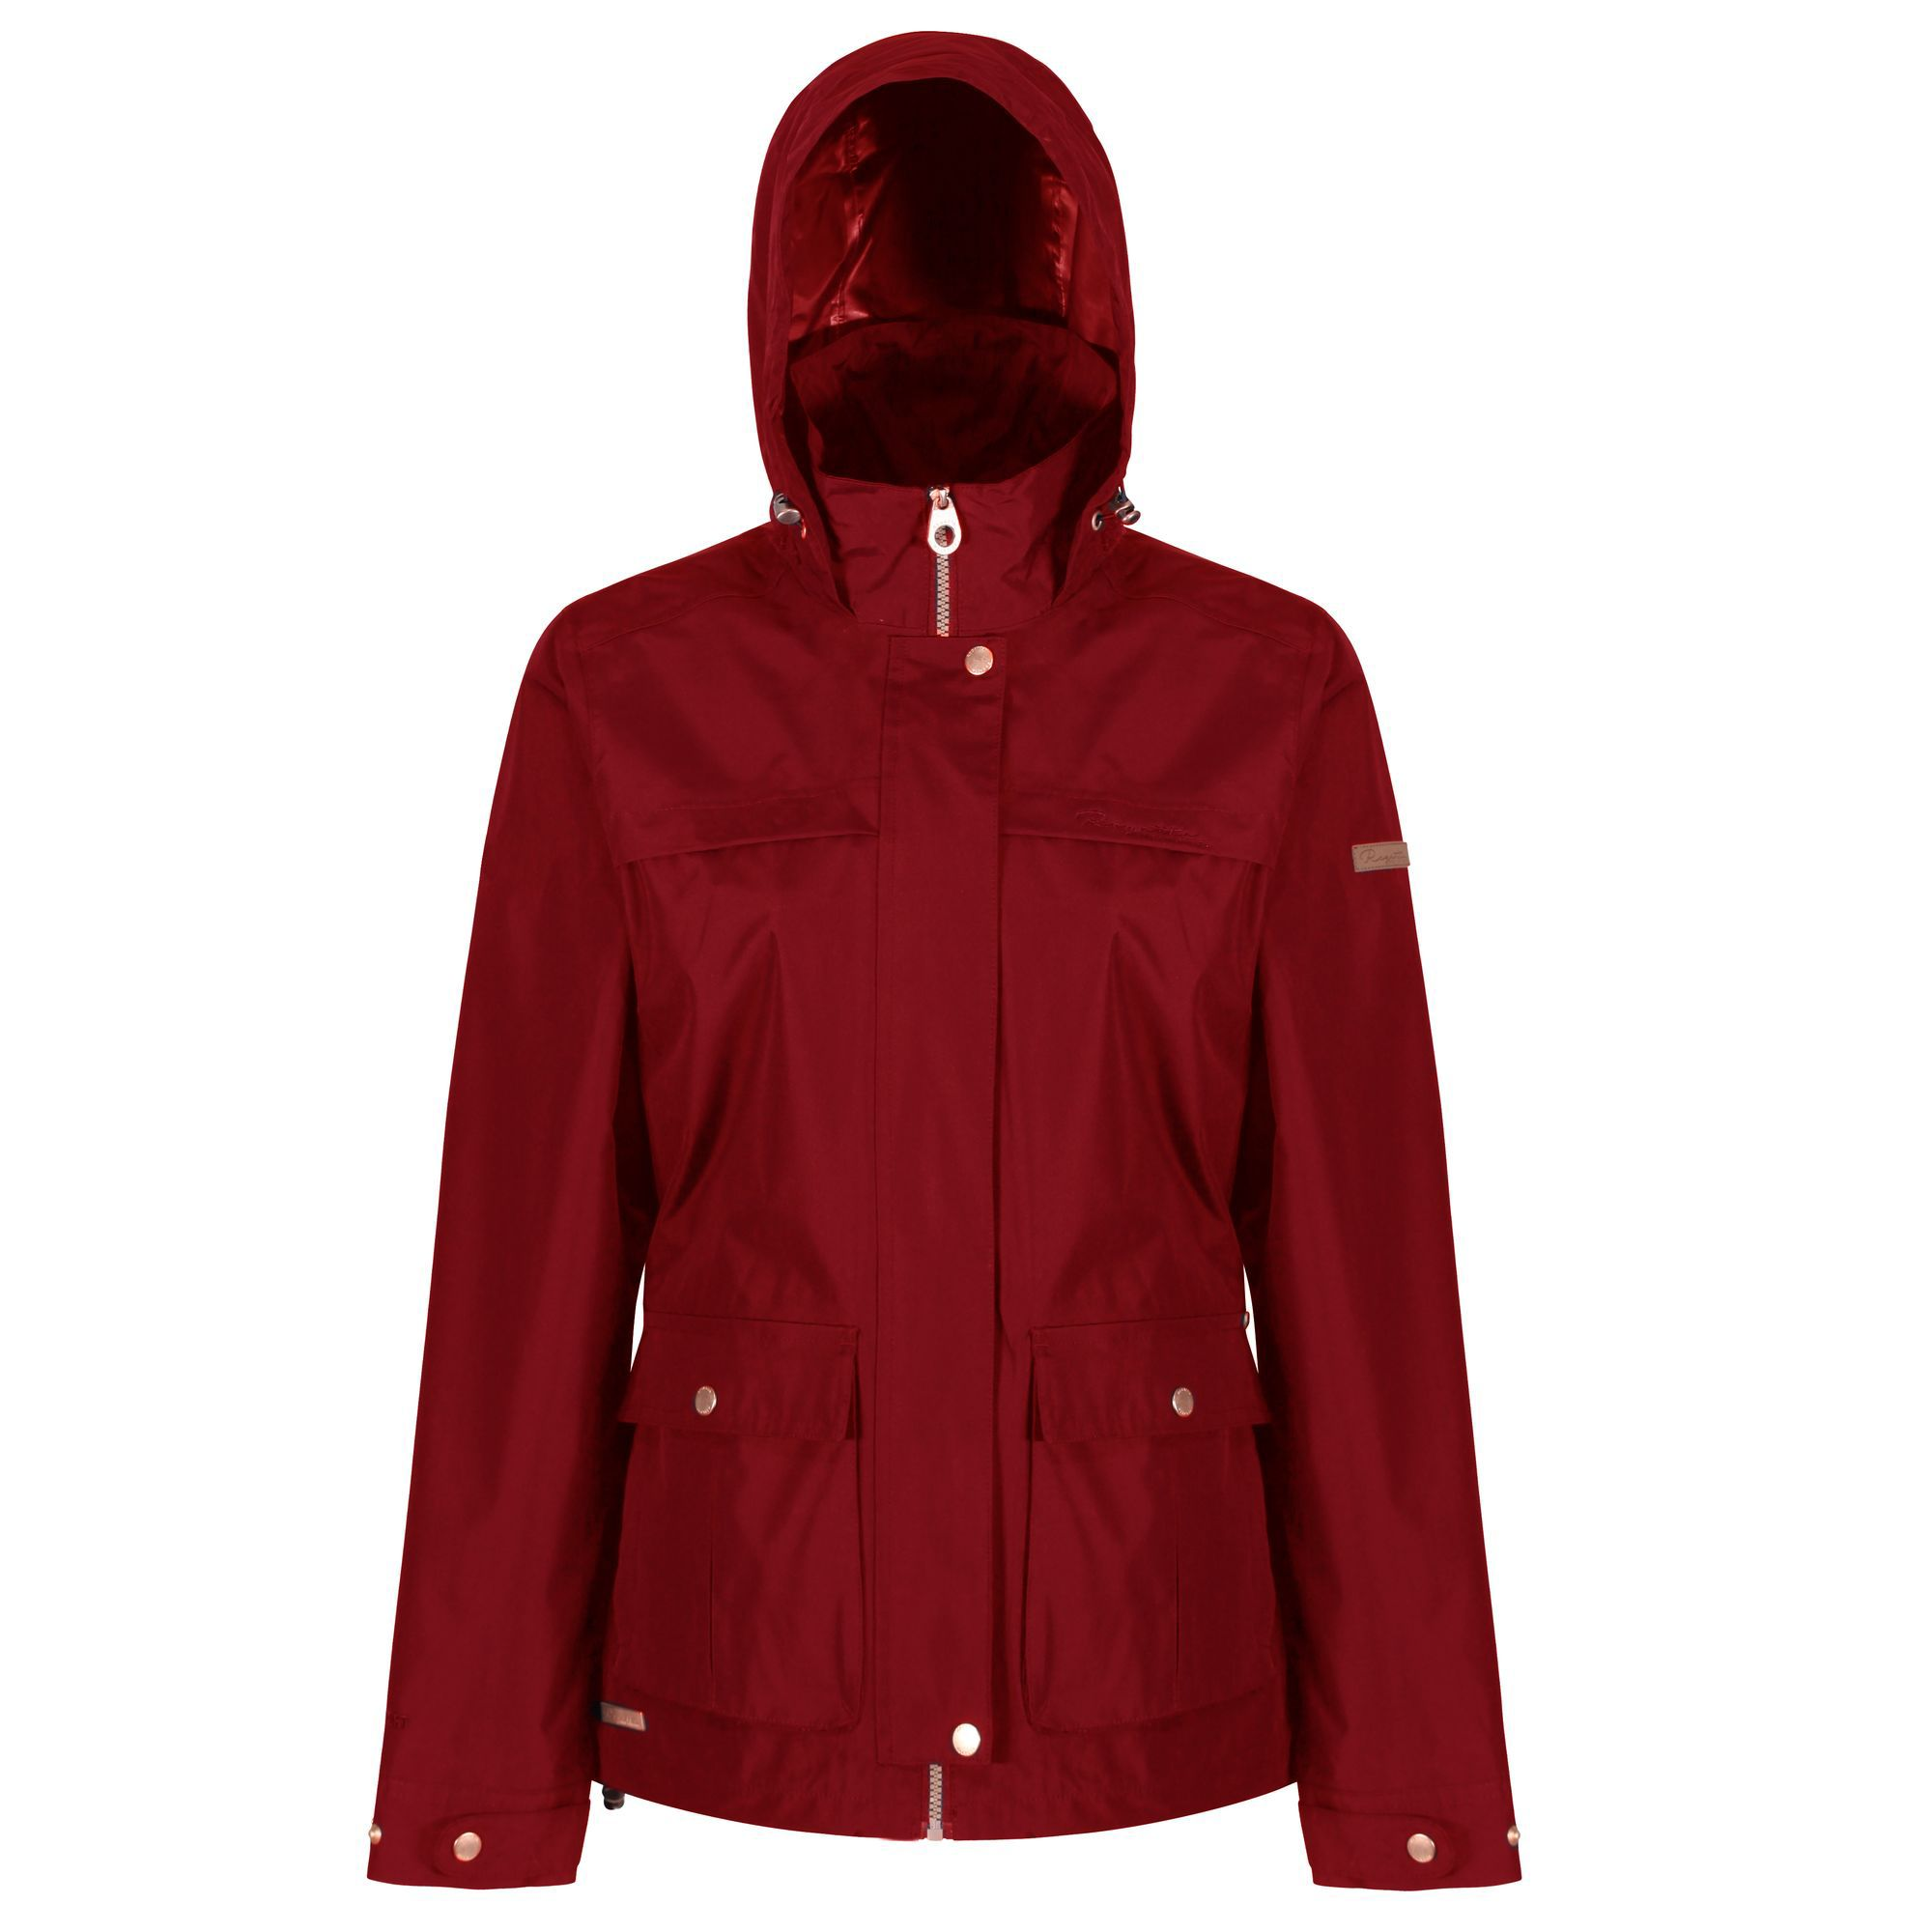 Regatta Landelina Waterproof Jacket, Red